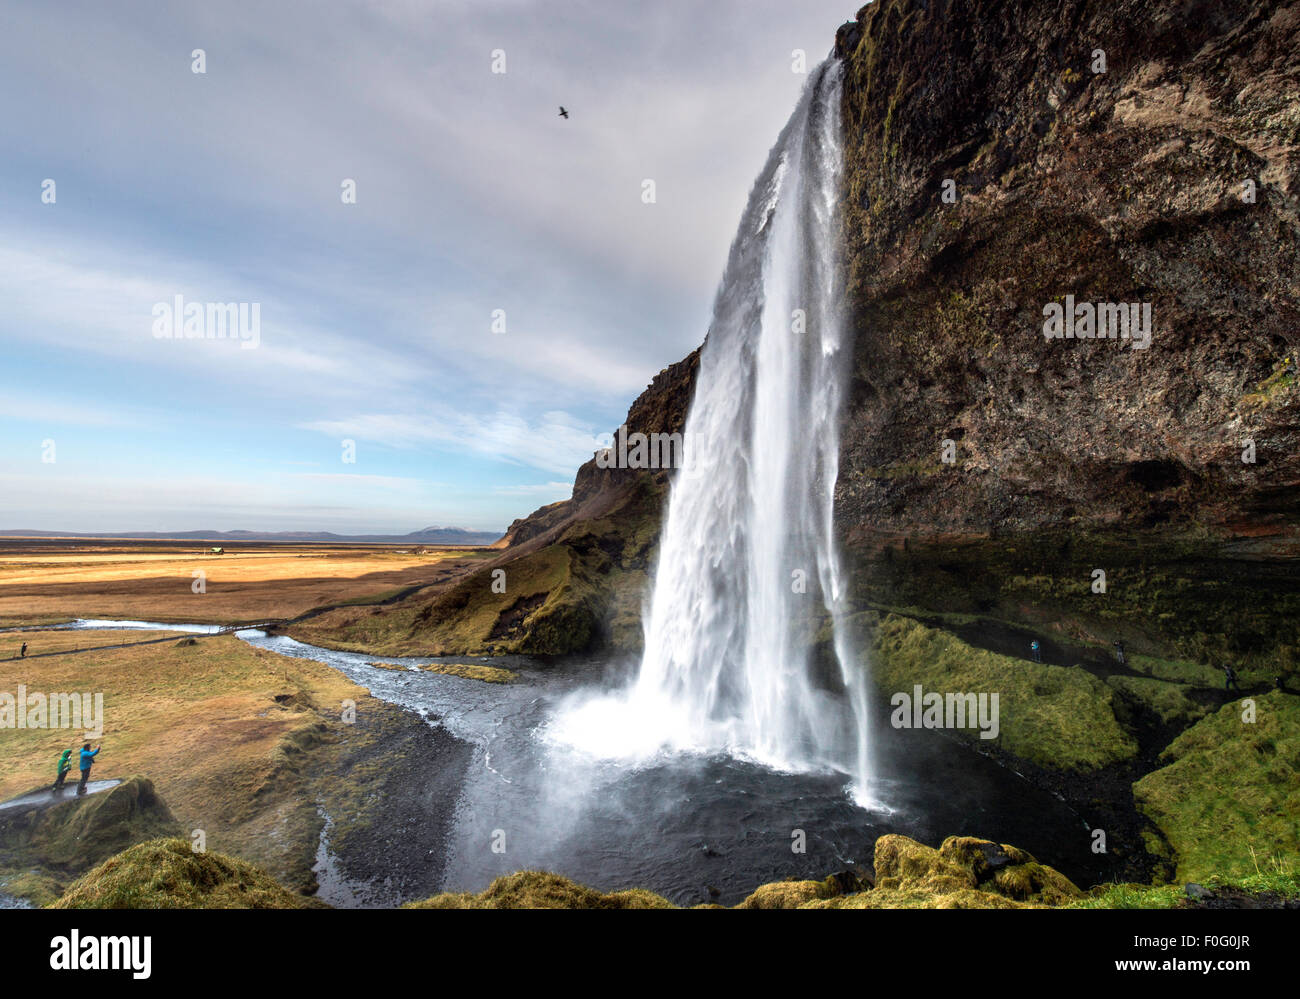 Seljalandsfoss waterfalls with tourists standing on rock South West Iceland Europe - Stock Image